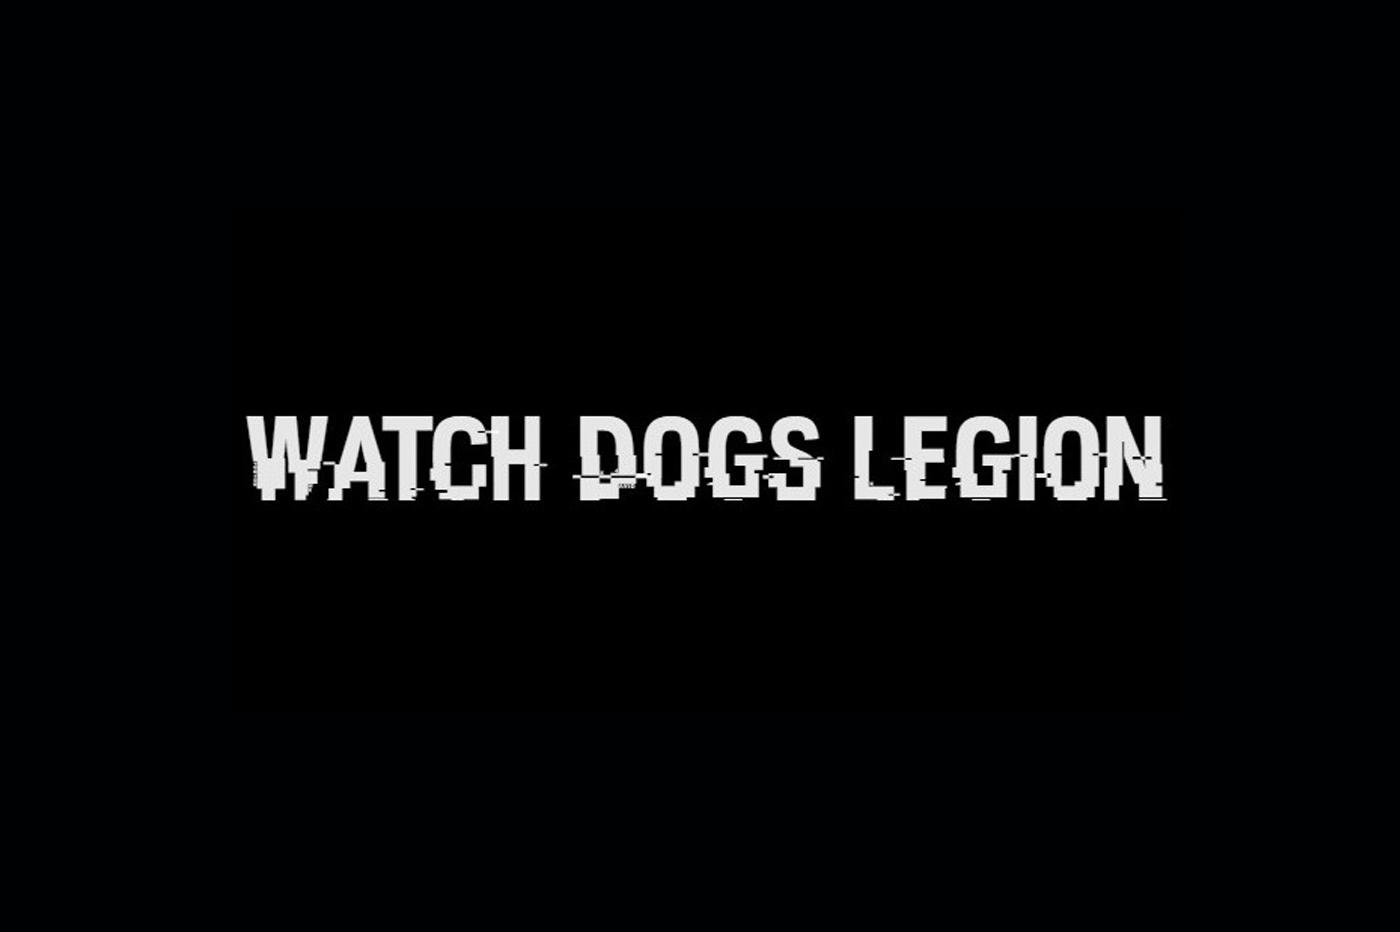 Watch Dogs 3 s'appelle Watch Dogs Legion et s'annonce très ambitieux